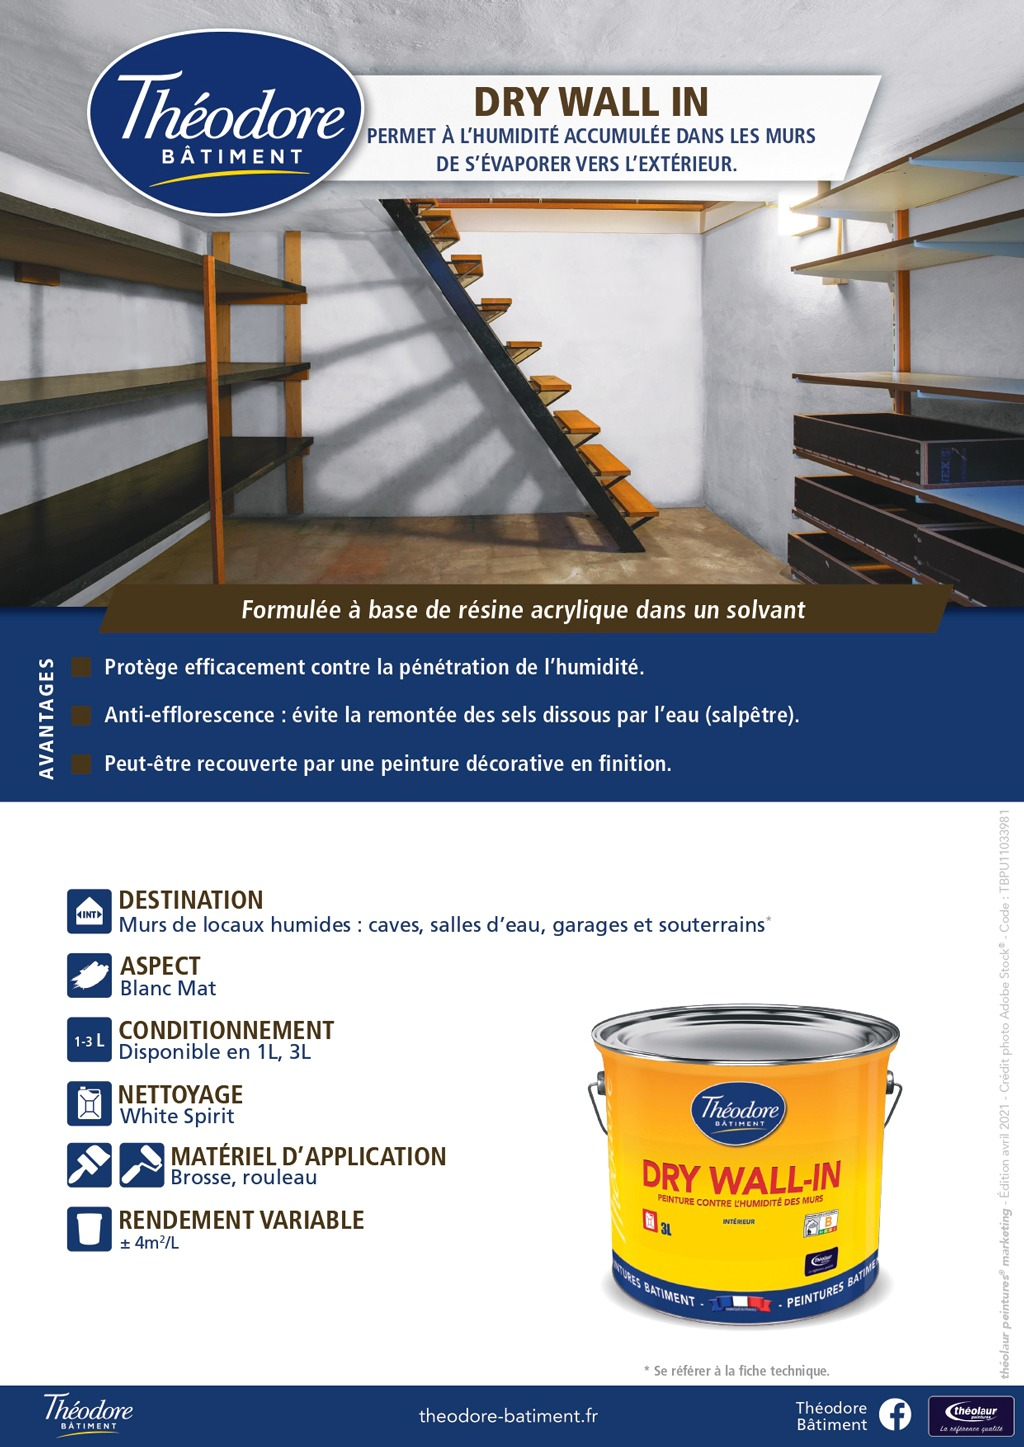 Peinture anti humidité Dry Wall In Théodore Bâtiment